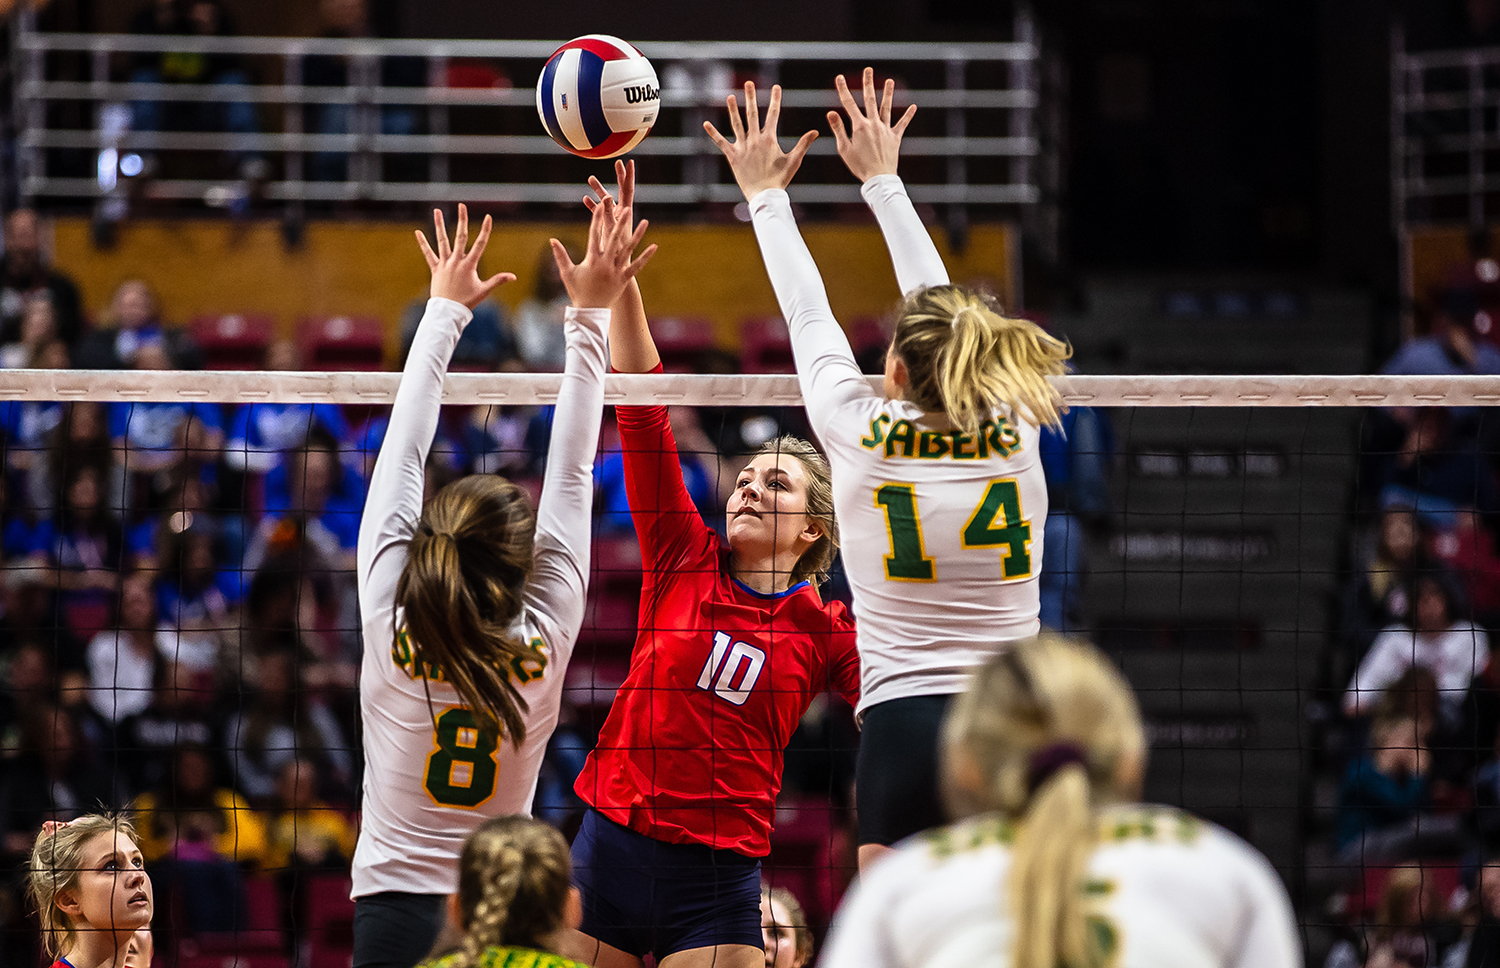 Pleasant Plains' Allie Edwards (10) sends an attack over the net against Champaign St. Thomas More's Maris Green (8) and Champaign St. Thomas More's Allie Trame (14)  during the Class 2A IHSA Volleyball State Final Tournament semifinals at Redbird Arena, Friday, Nov. 9, 2018, in Normal, Ill. [Justin L. Fowler/The State Journal-Register]